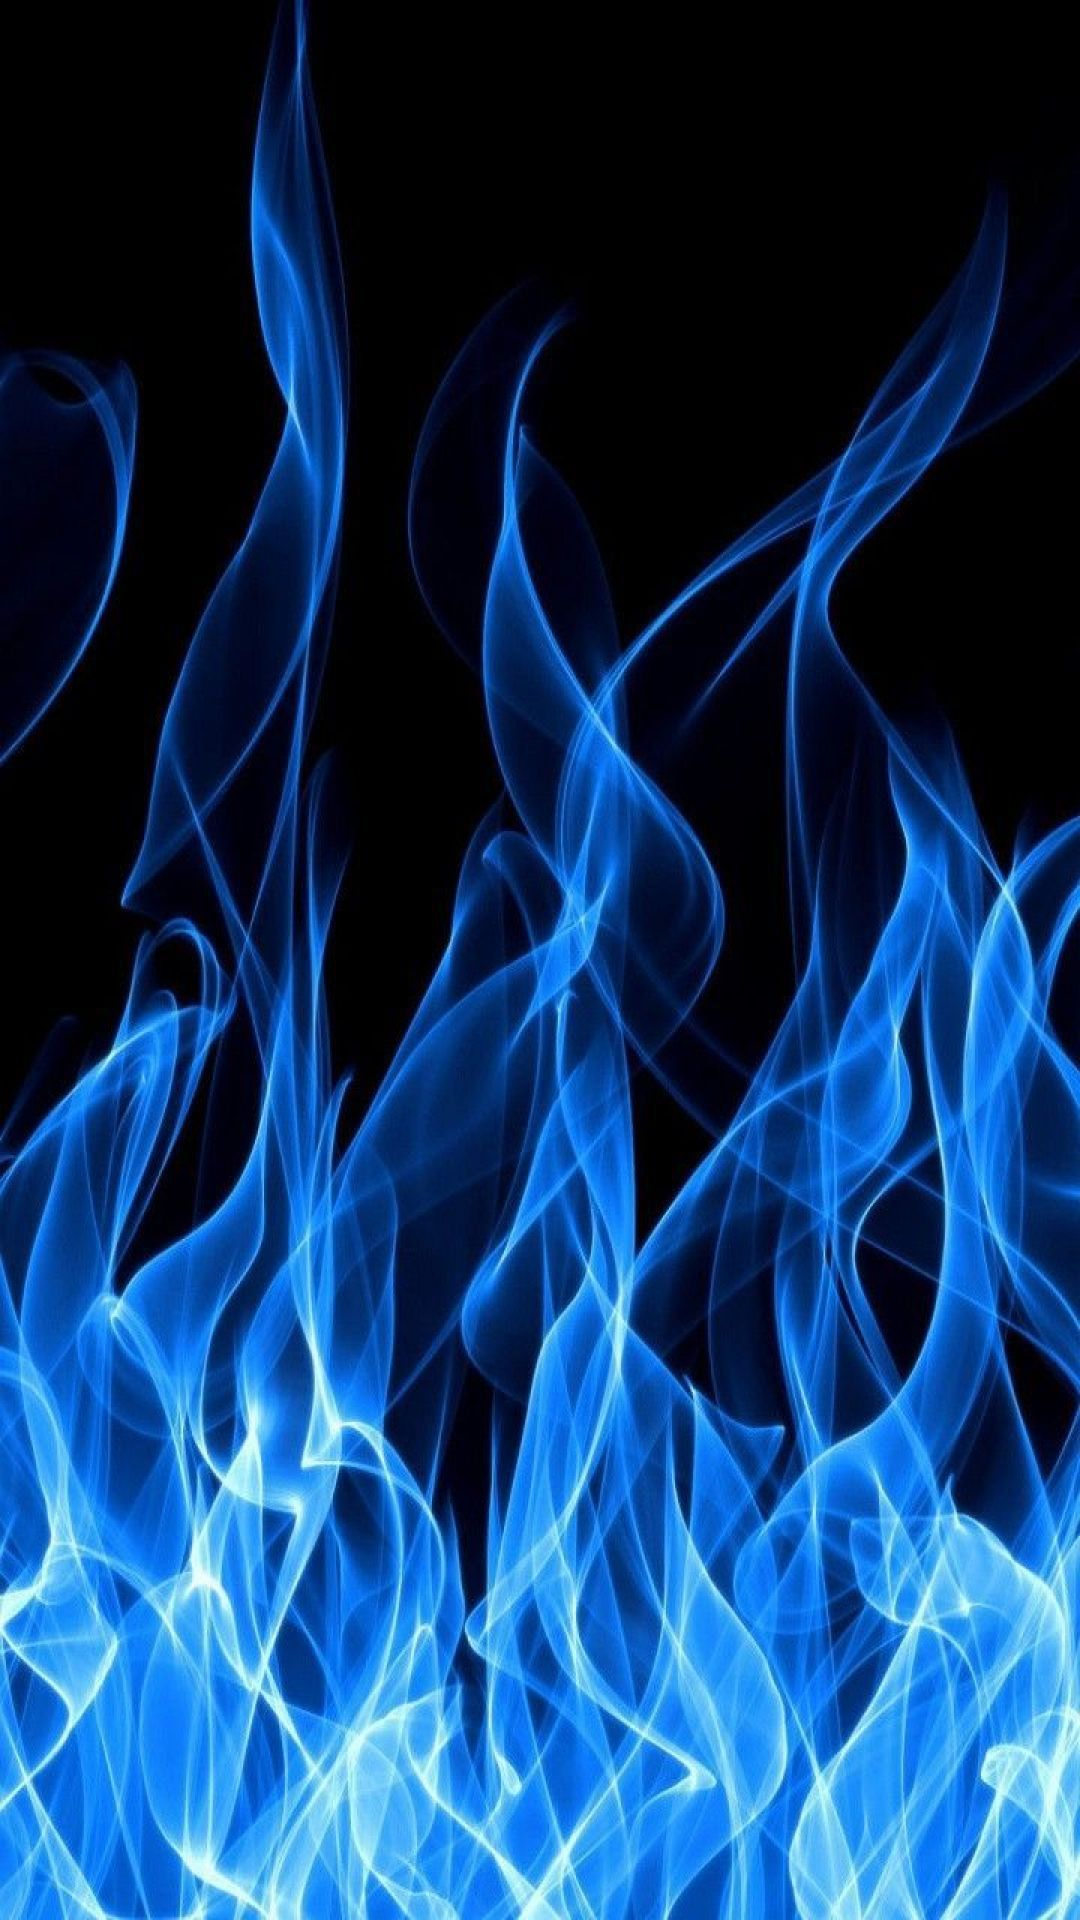 Fire Android Iphone Desktop Hd Backgrounds Wallpapers 1080p 4k 112747 Hdwallpapers A Blue Wallpaper Iphone Orange Wallpaper Black Phone Wallpaper